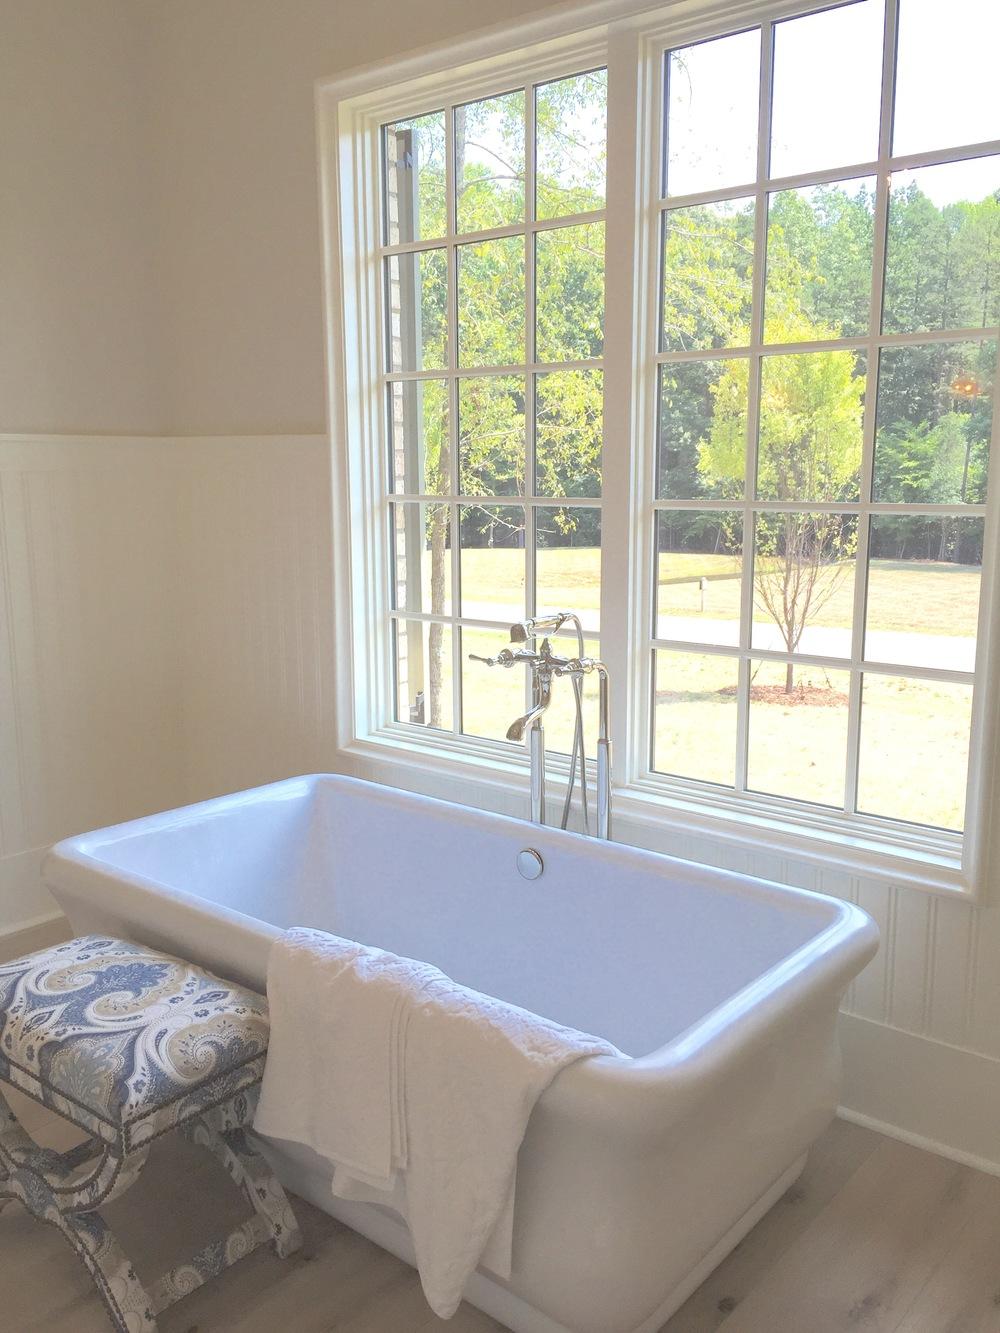 Bead board and plenty of natural light made this stand alone tub exceptional. An adorable paisley seat was paired next to the tub for a colorful touch.